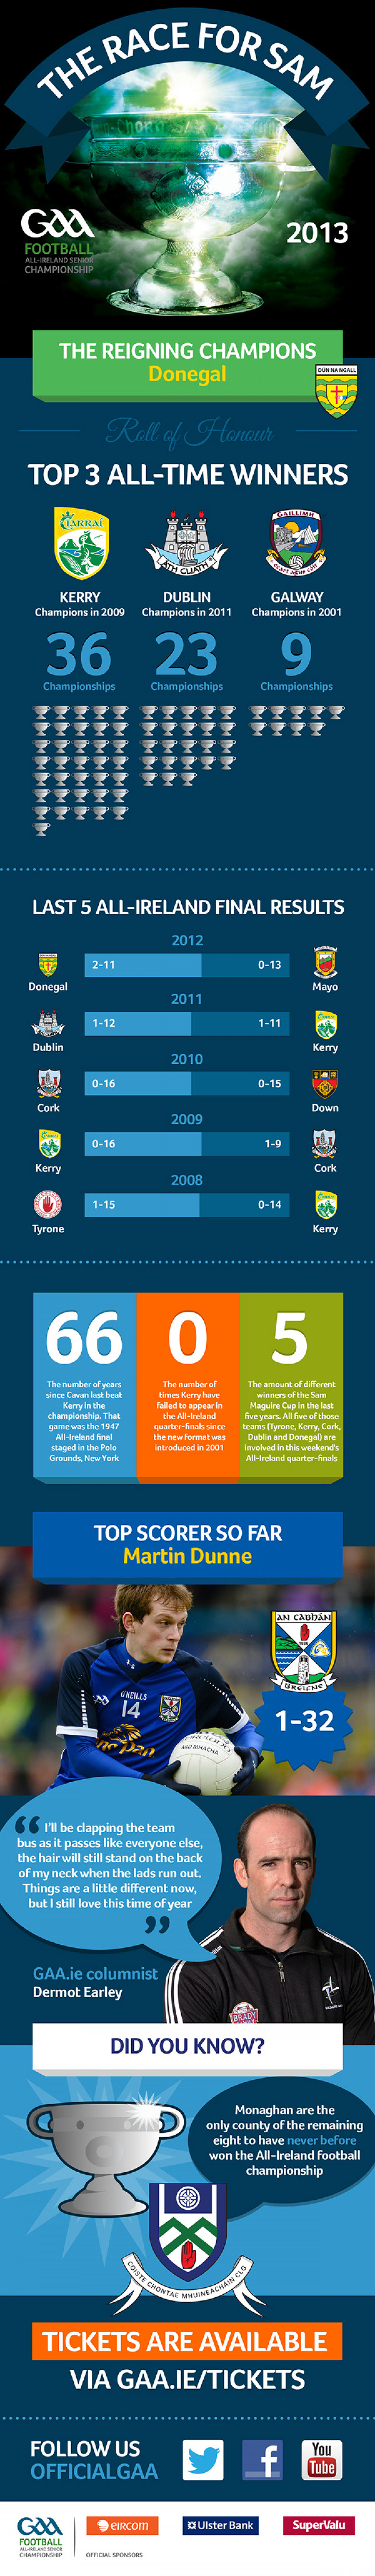 GAA 2013 The Race for Sam Infographic